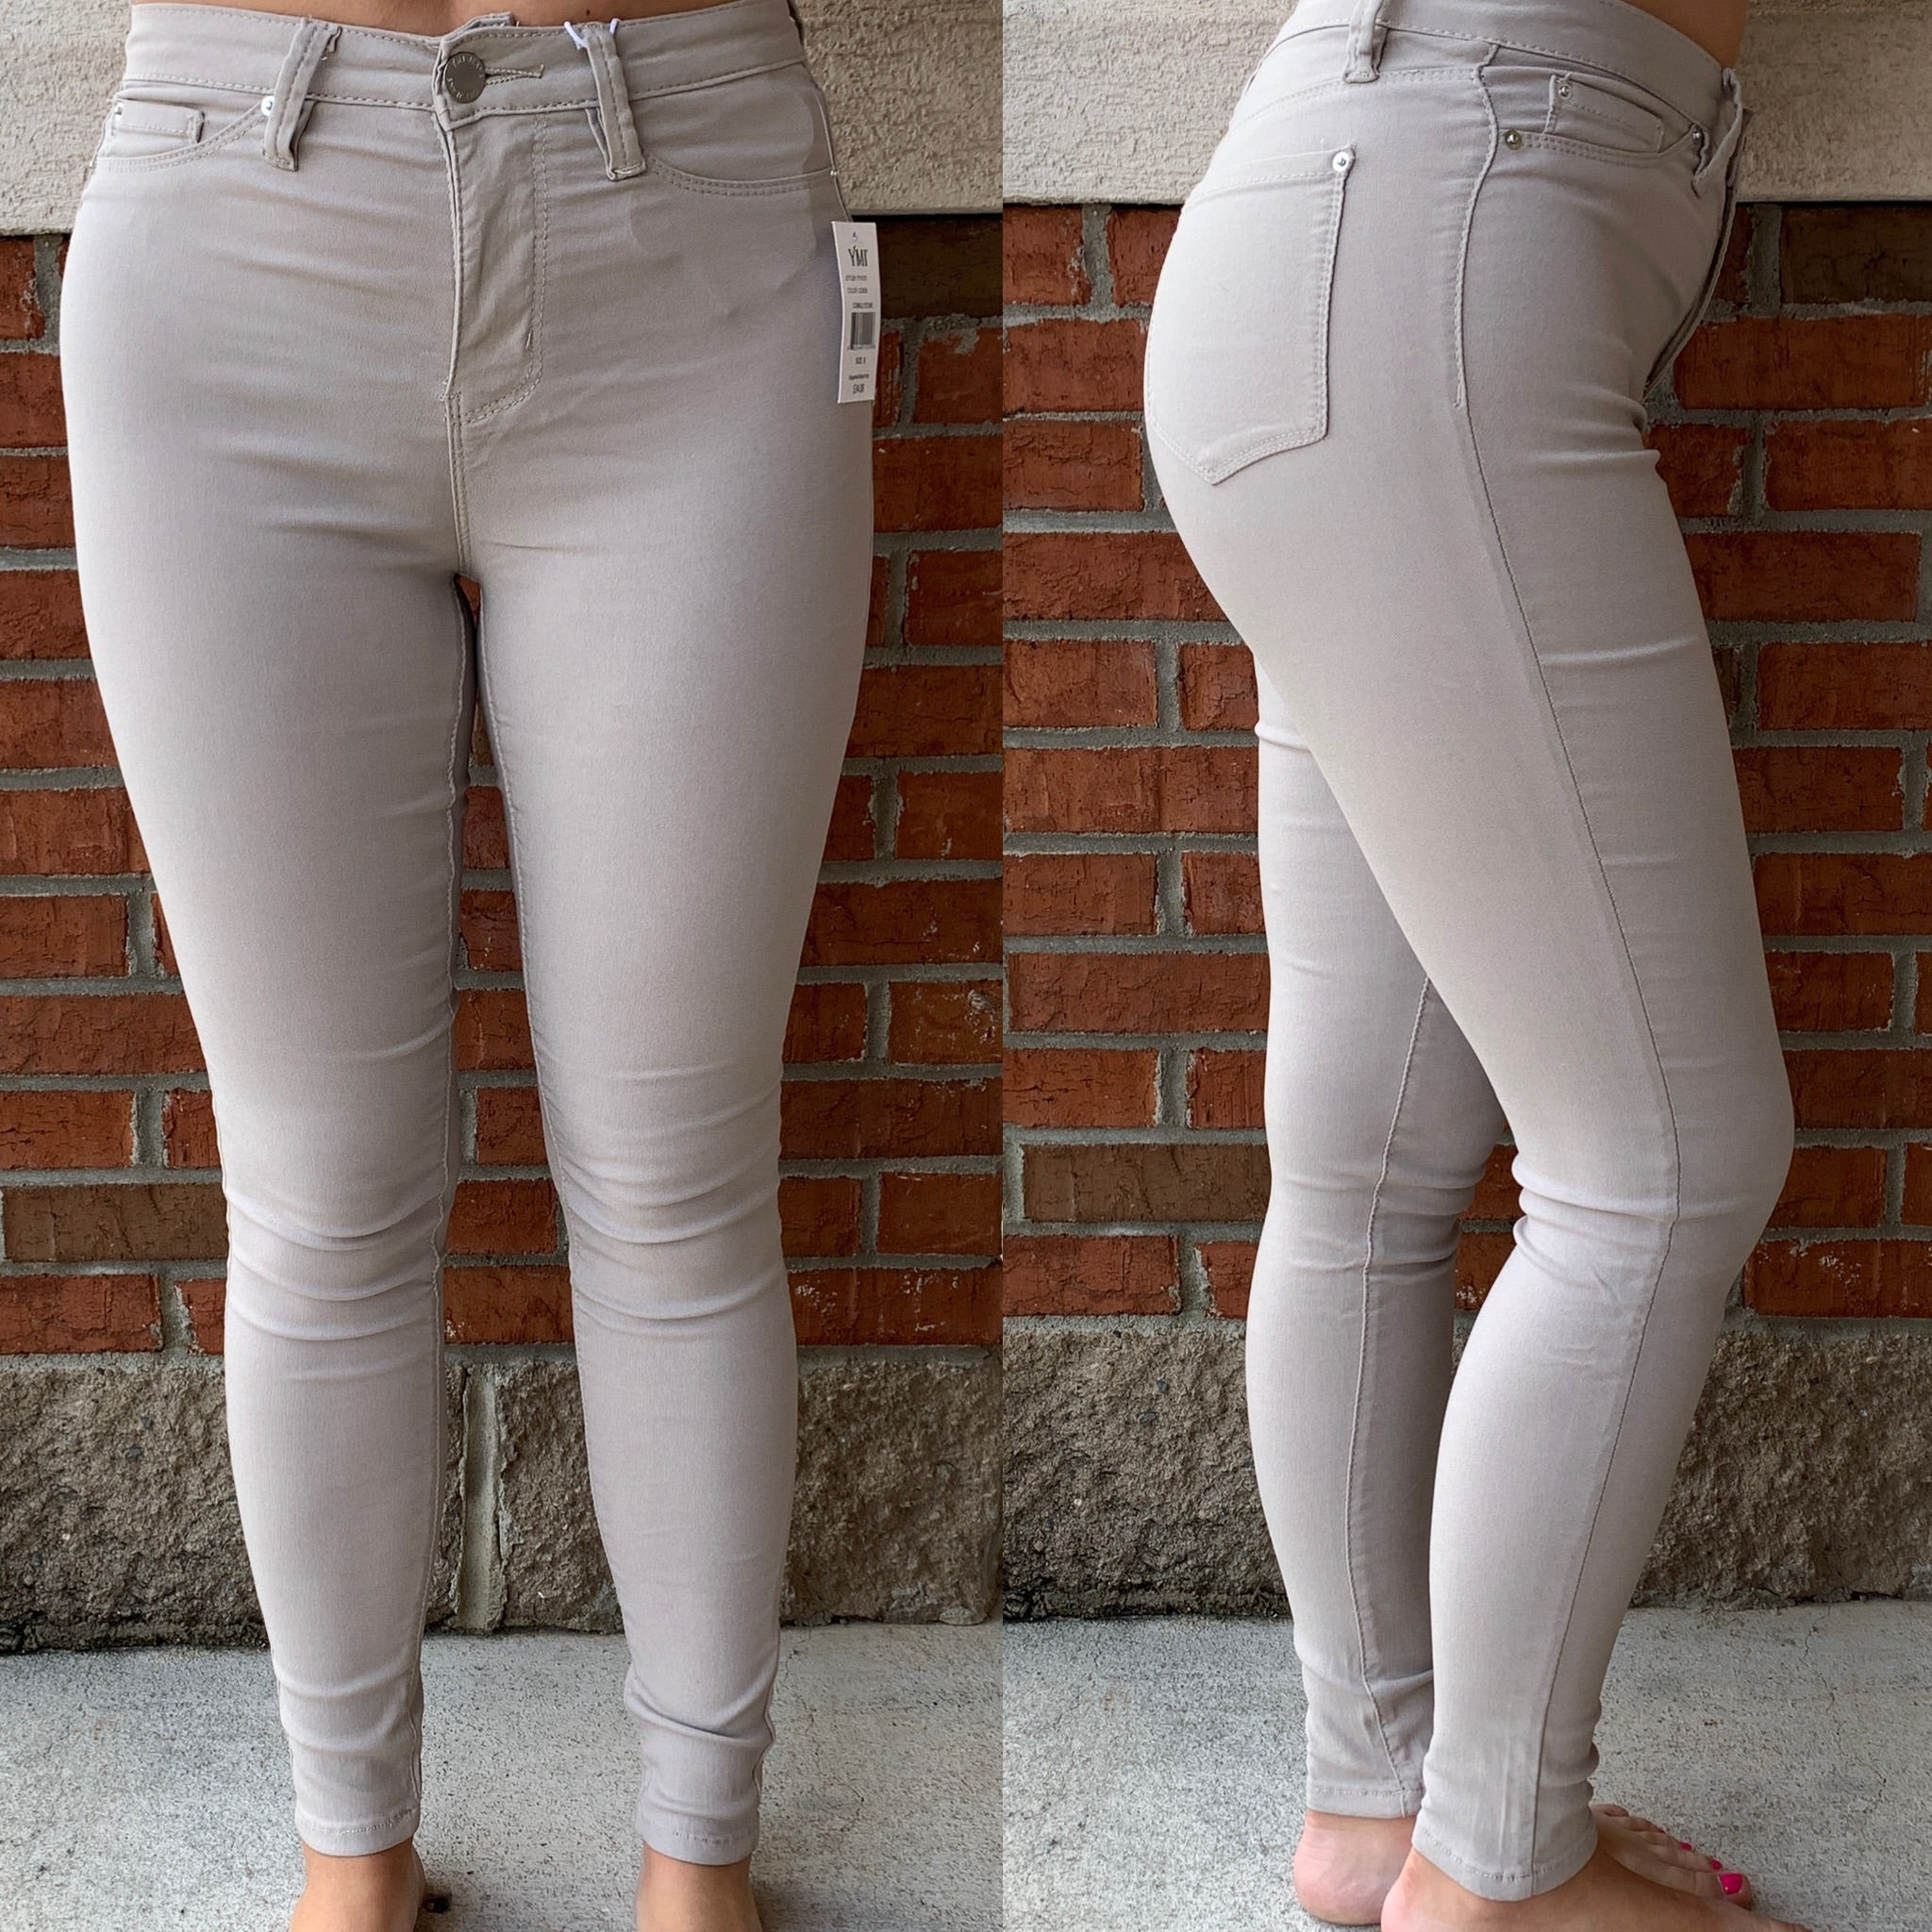 YMI Hyperstretch Skinnies - Cobble Stone